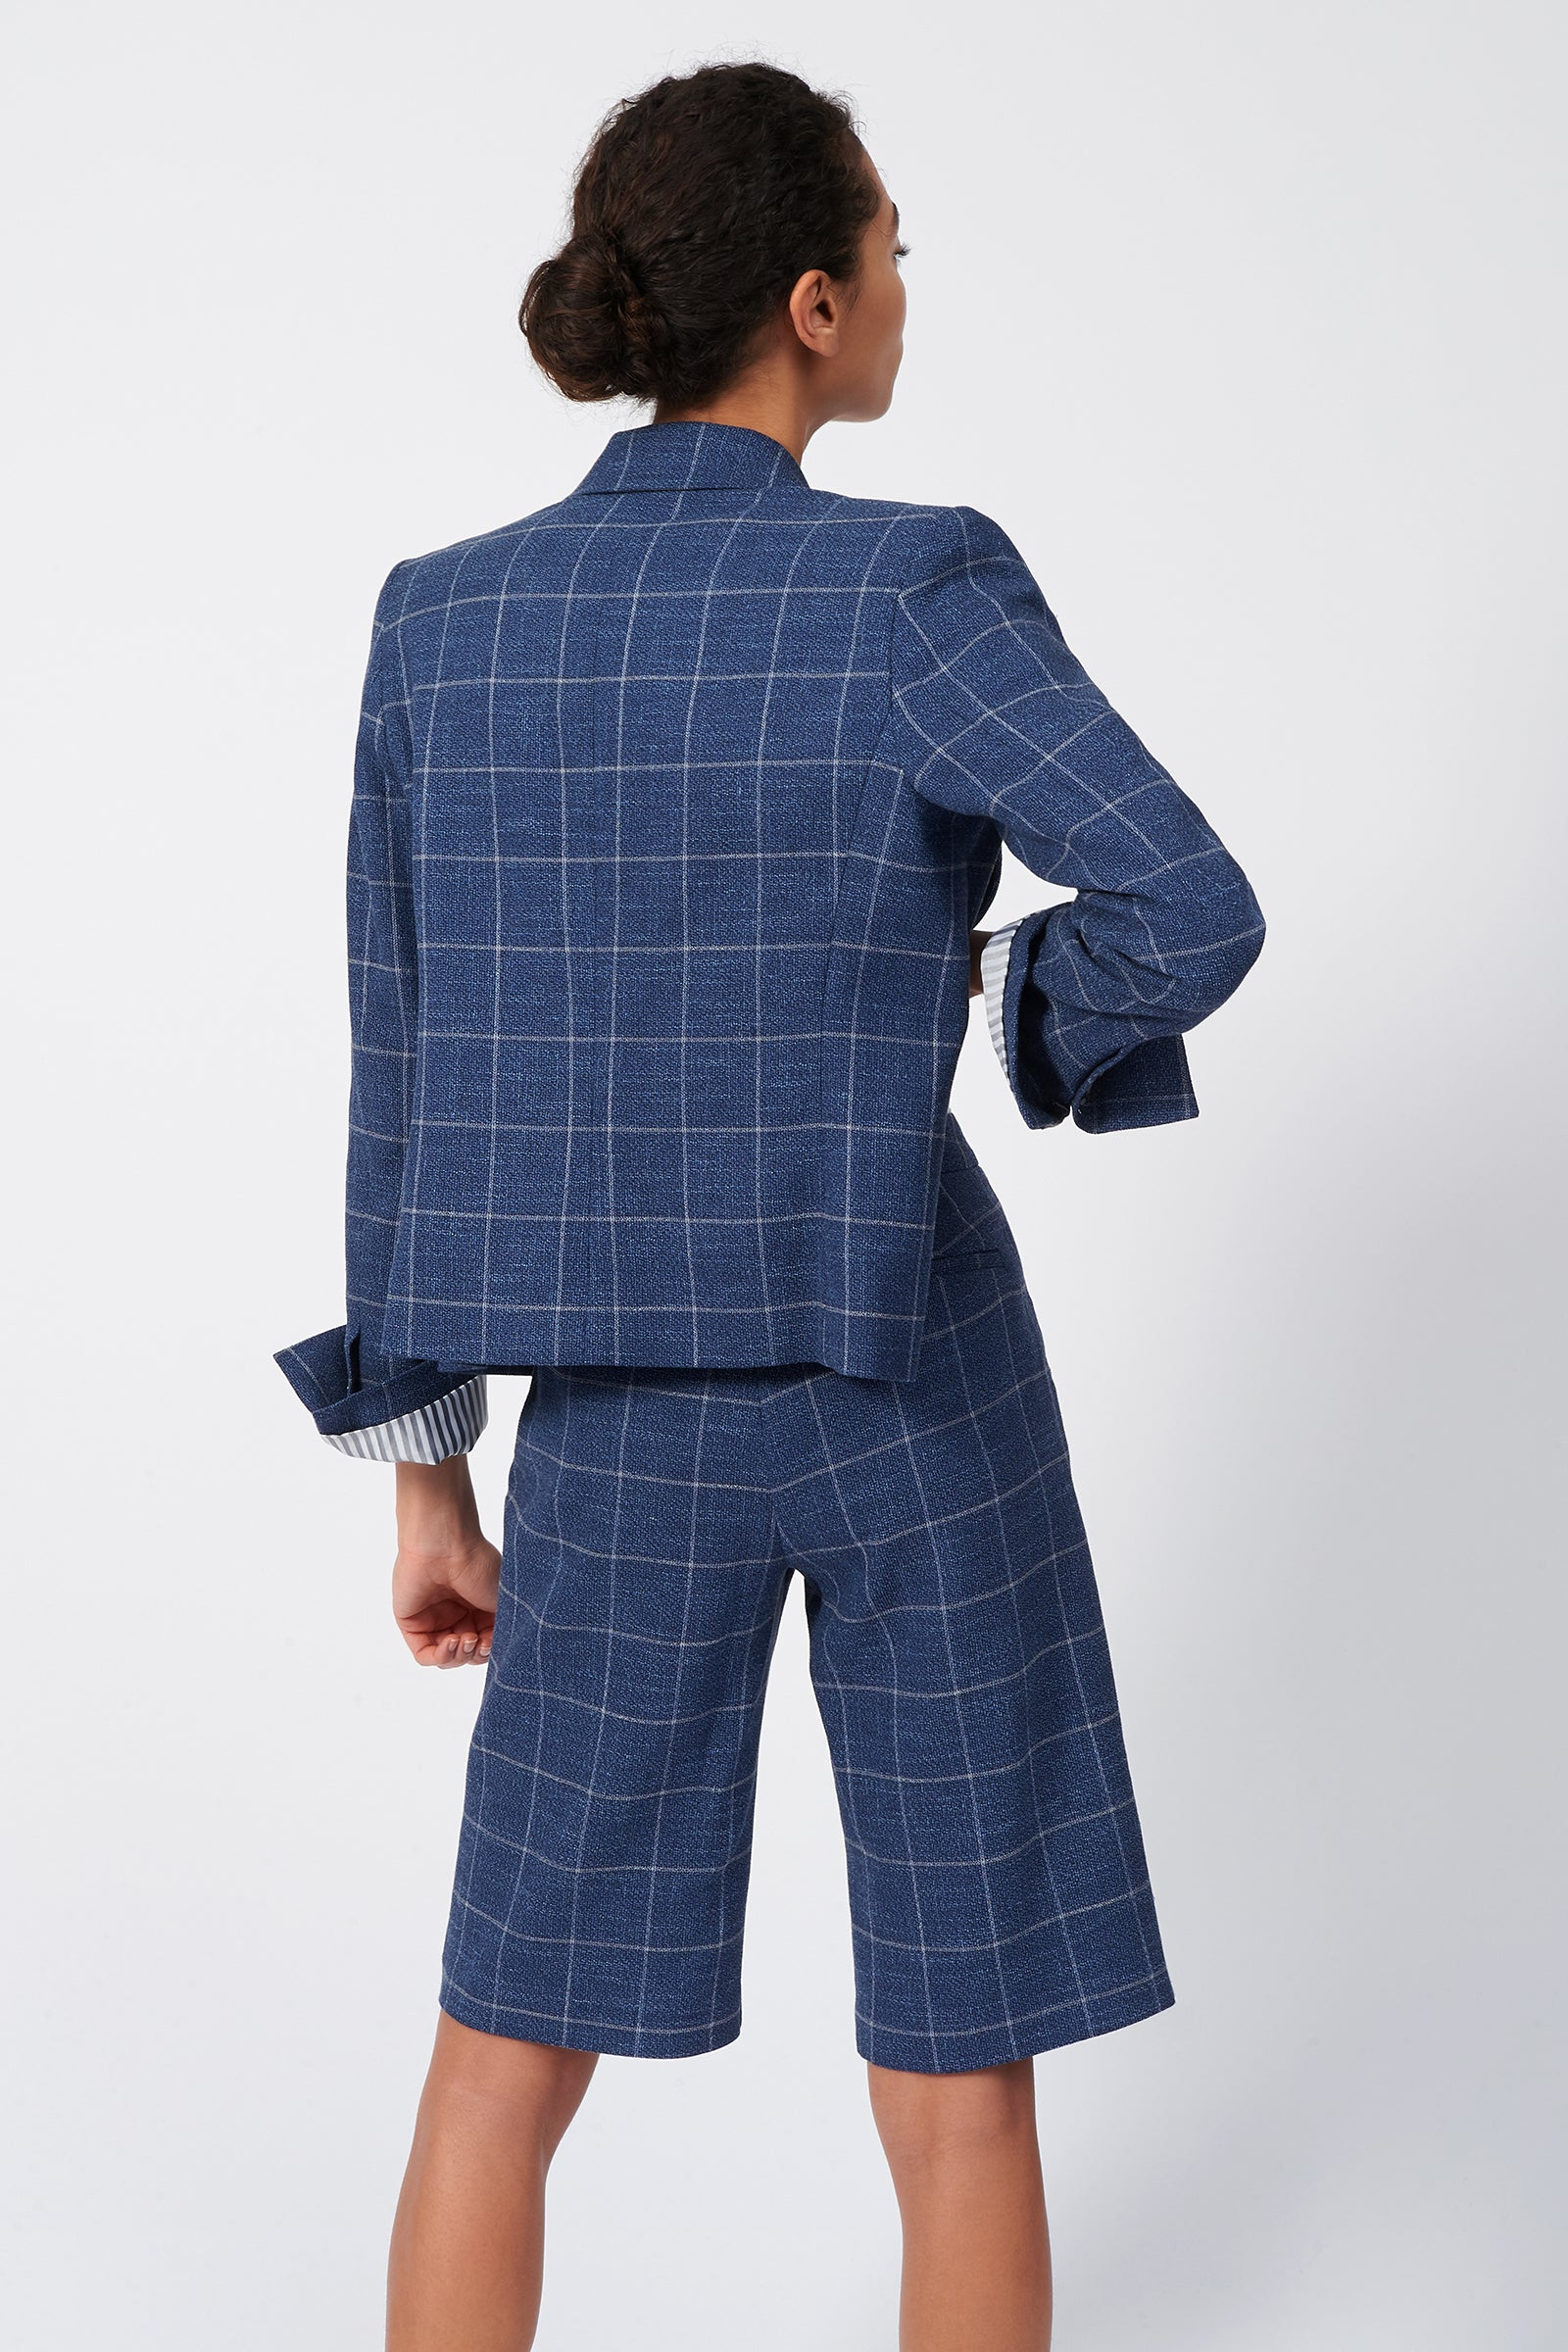 Kal Rieman Crop Tux Blazer in Windowpane on Model Front View